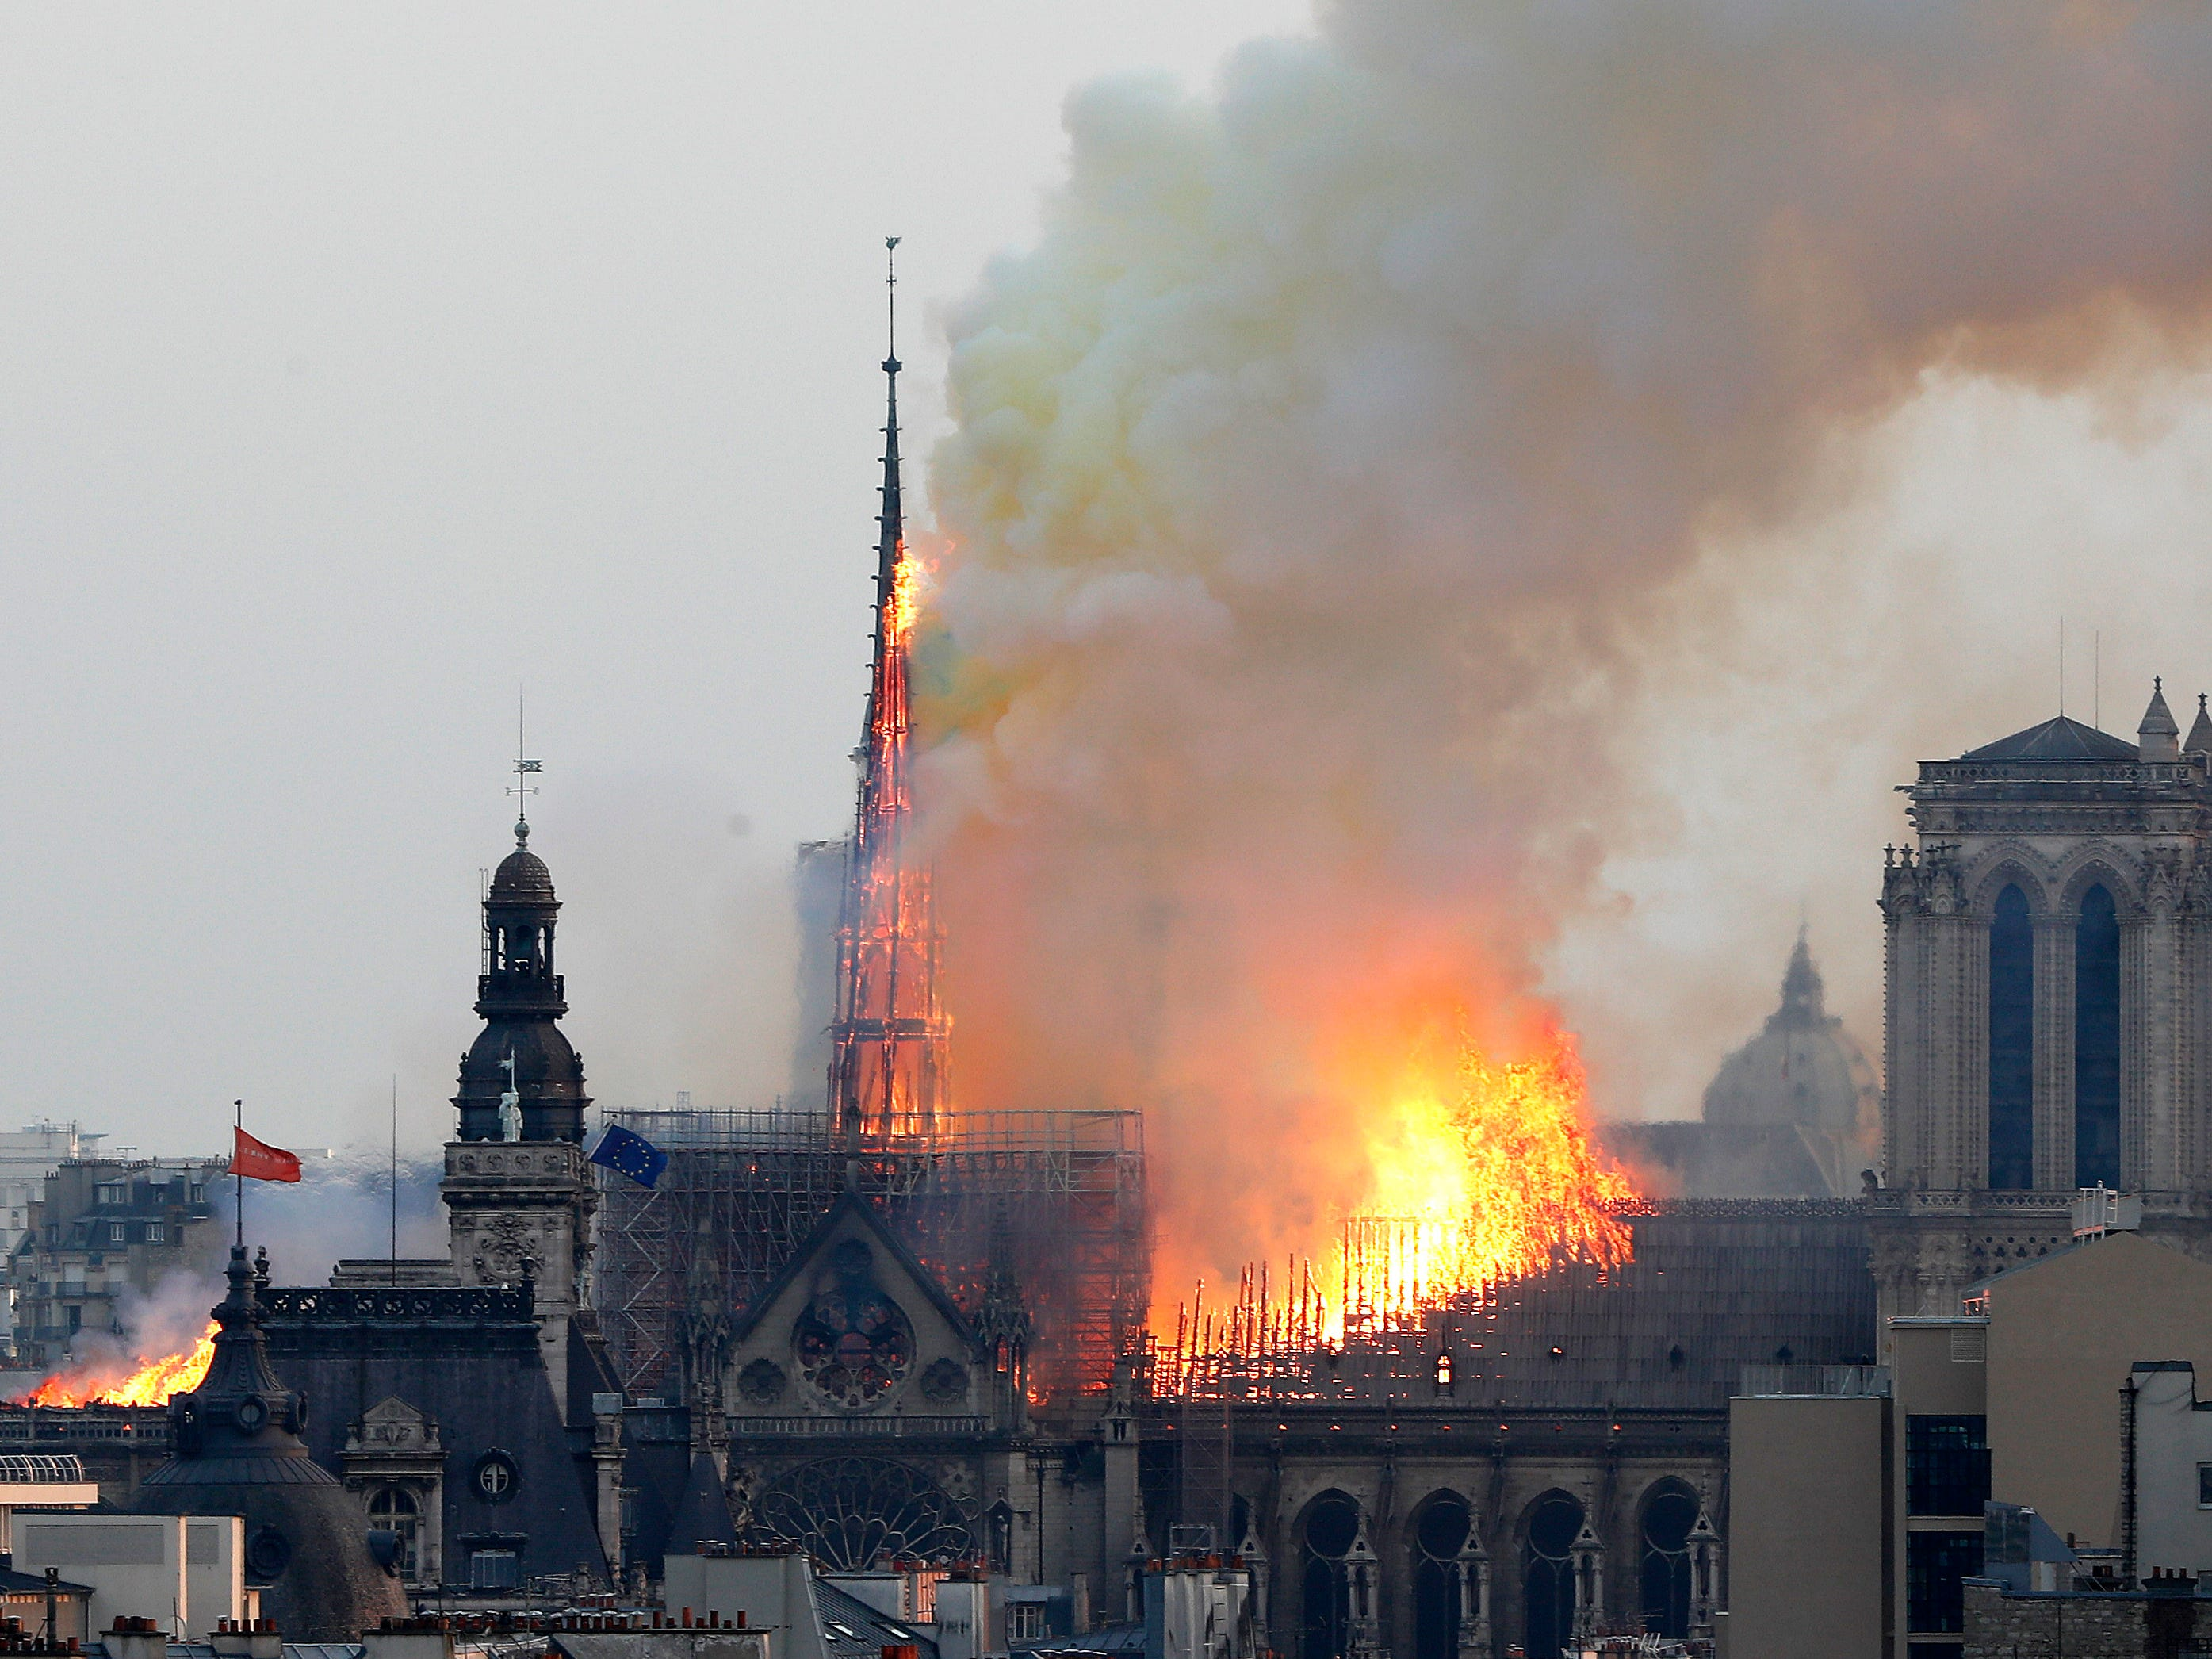 Flames rise from Notre Dame cathedral as it burns in Paris, Monday, April 15, 2019. Massive plumes of yellow brown smoke filled the air above Notre Dame Cathedral and ash fell on tourists and others around the island that marks the center of Paris.